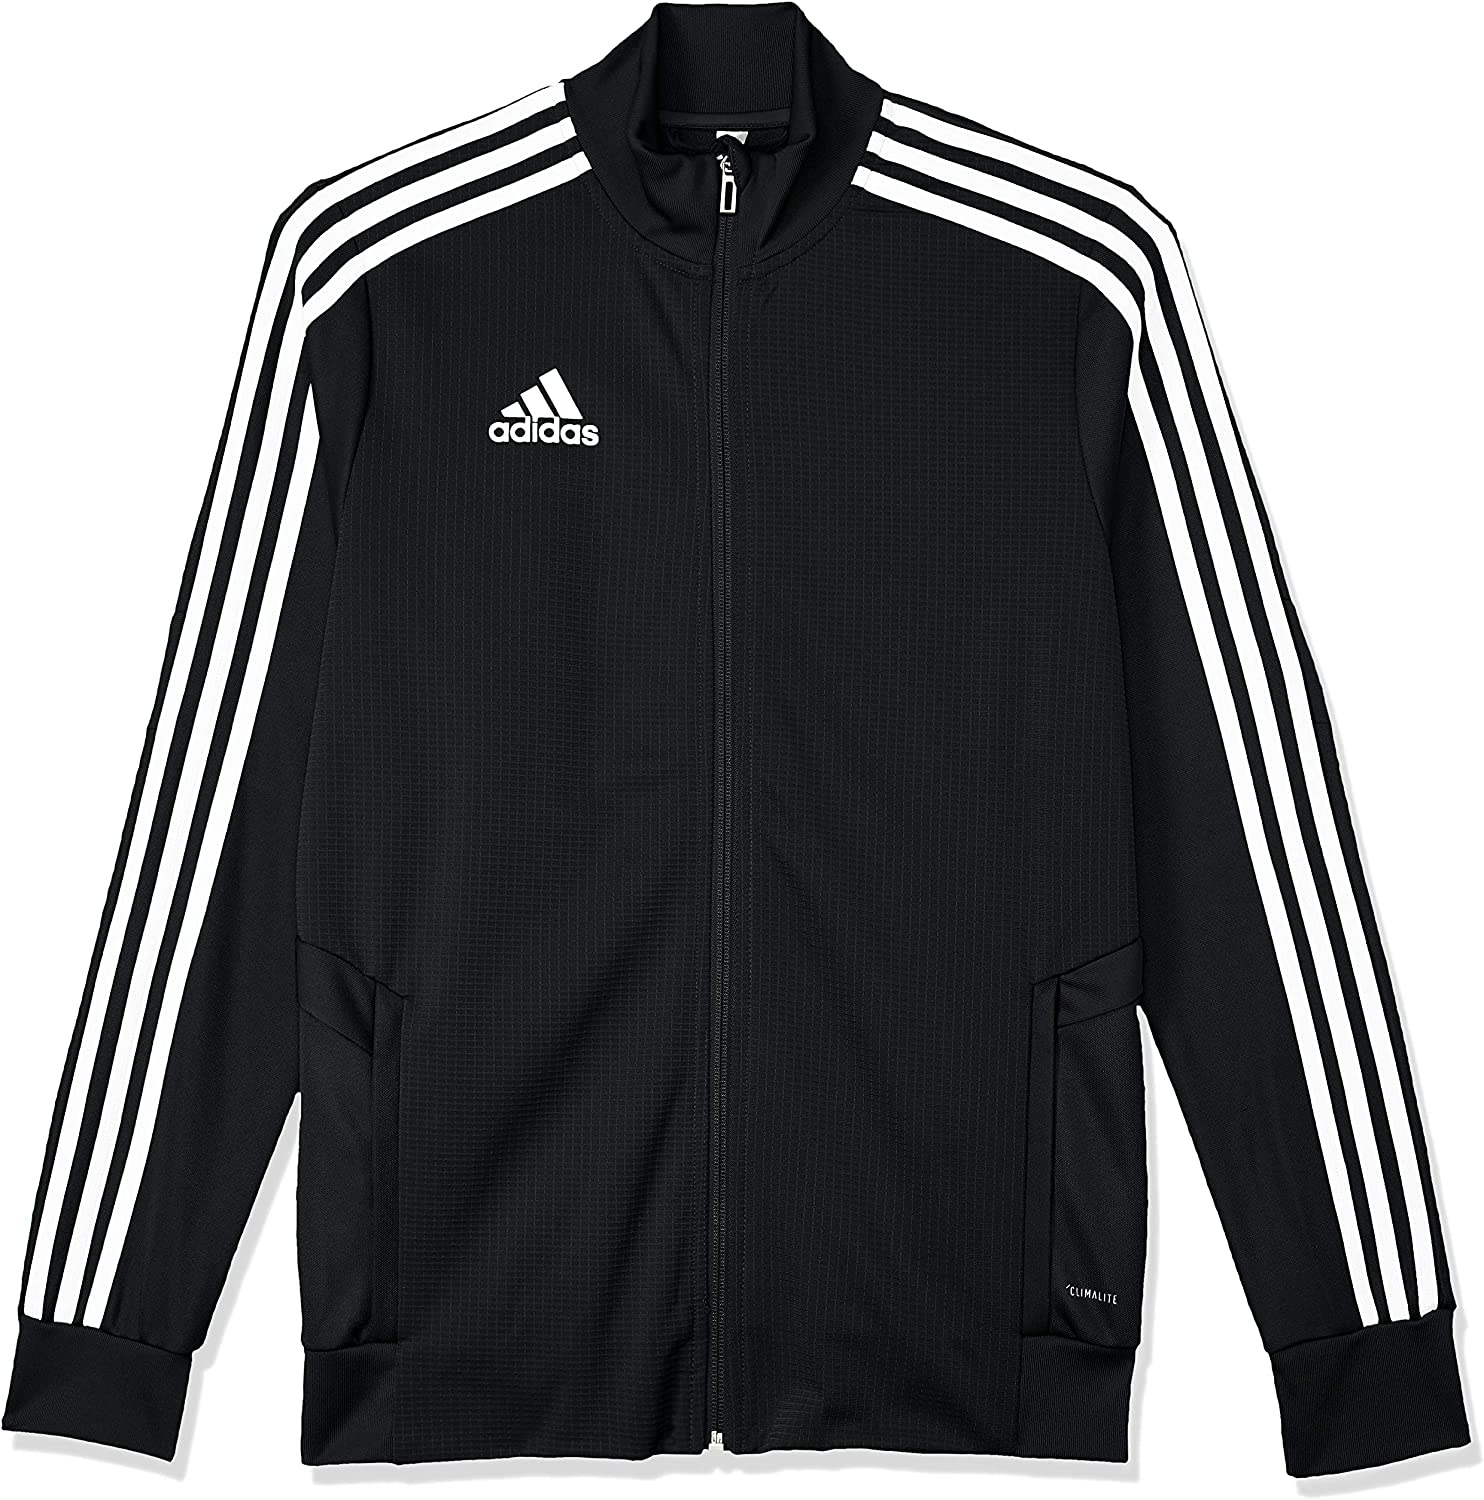 Veste junior training adidas Tiro 19